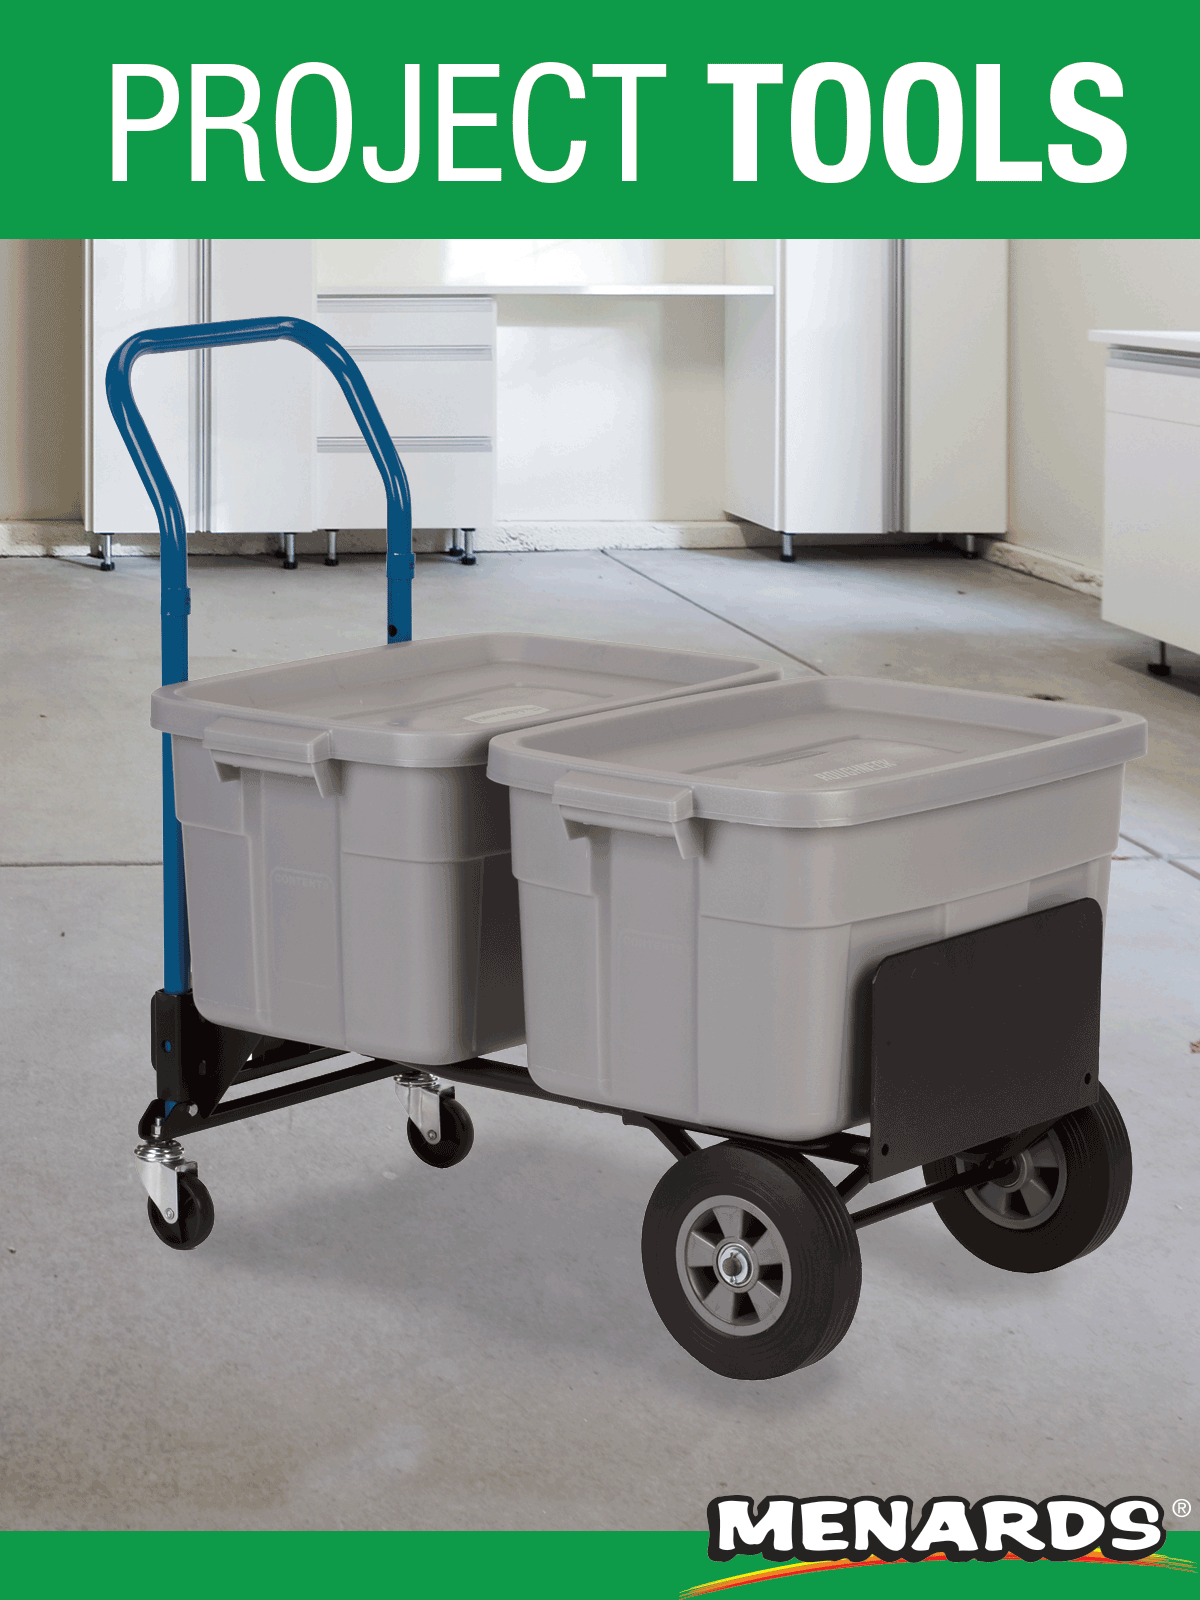 Make Your Move Go Smooth With This Harper Quick Change 3 In 1 Convertible Hand Truck Which Provides Easy Conversion